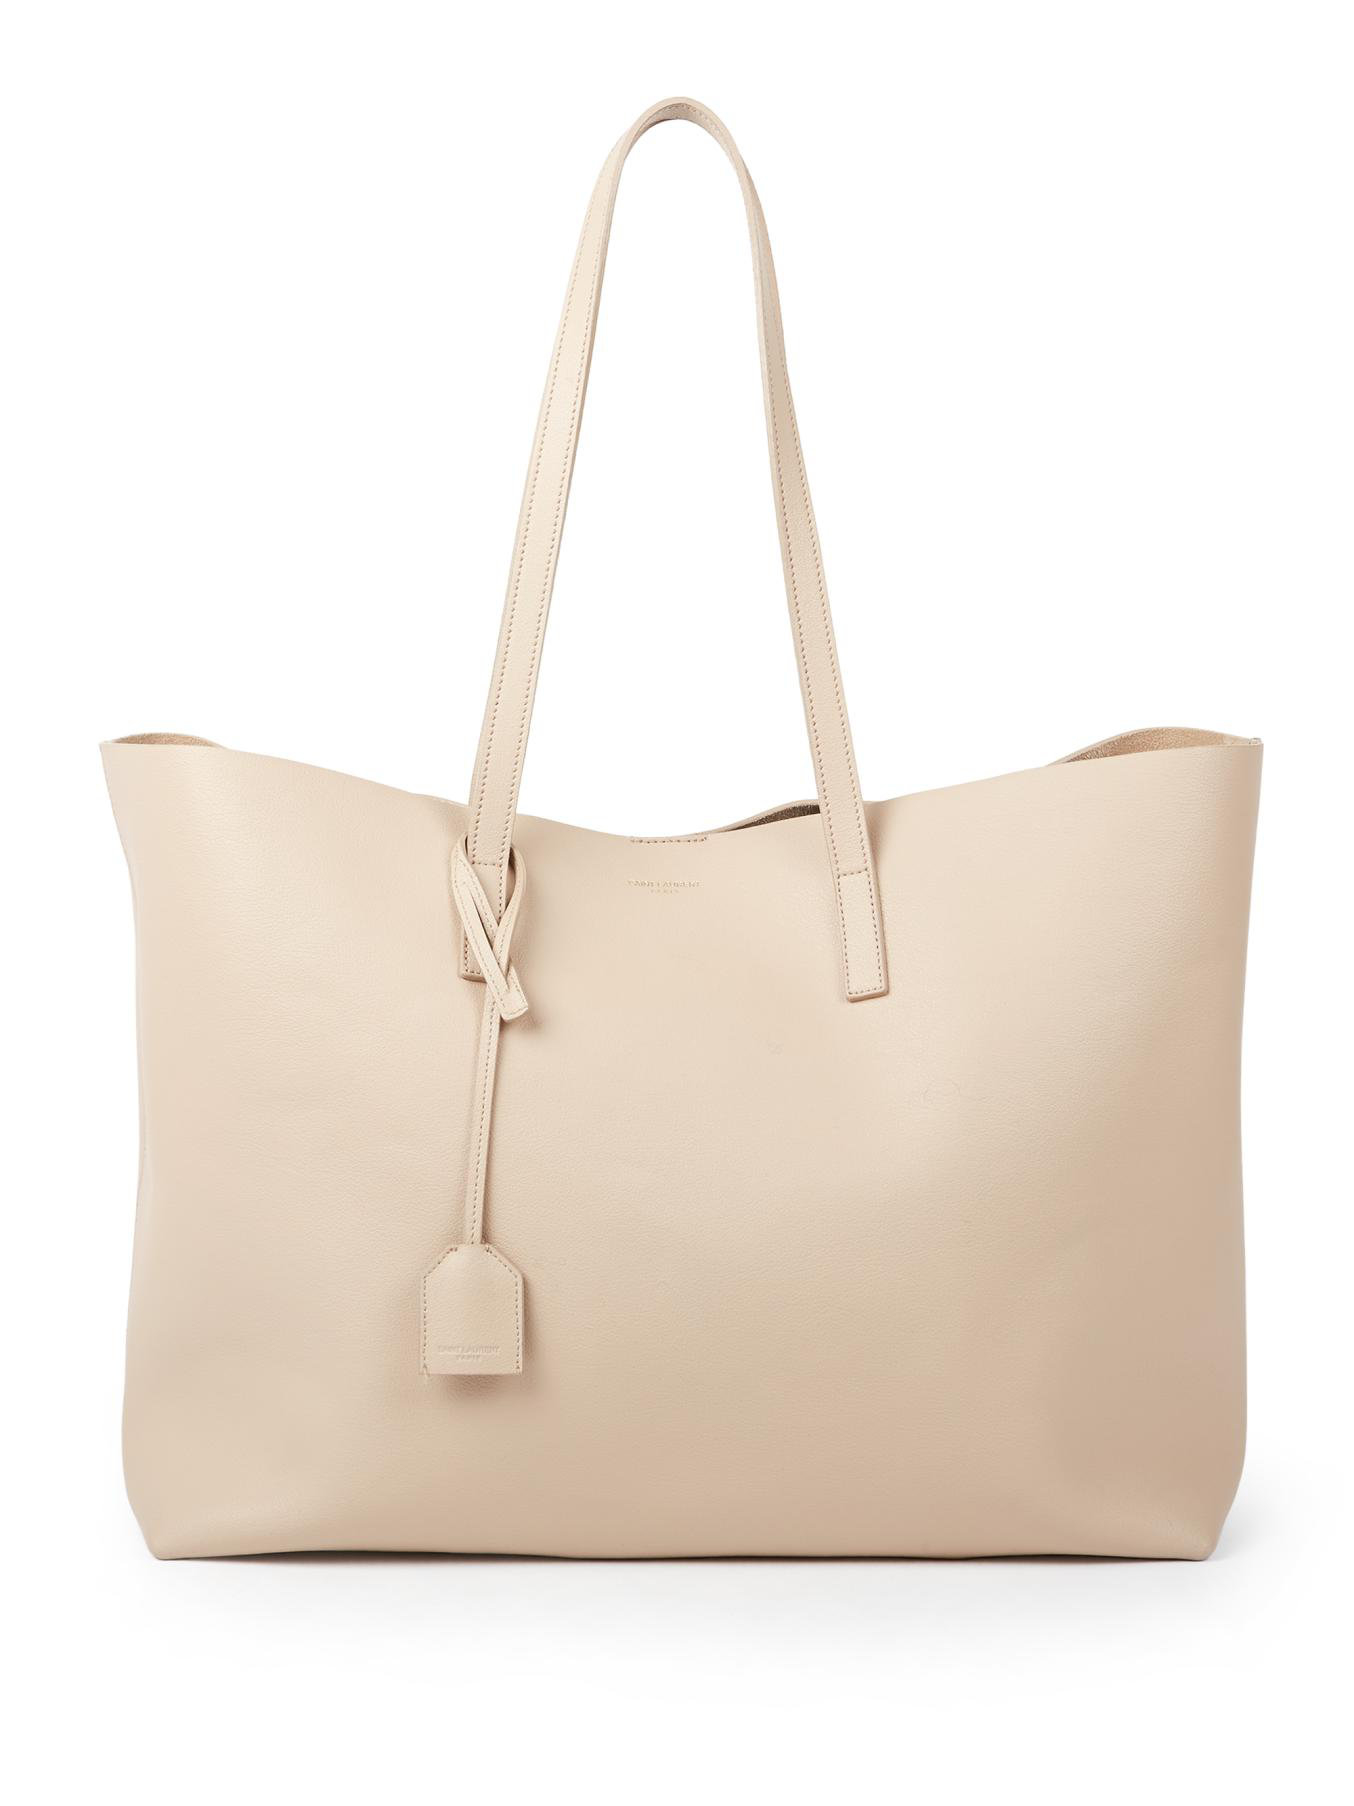 Saint laurent Large Shopping Tote Smooth Leather in Beige | Lyst